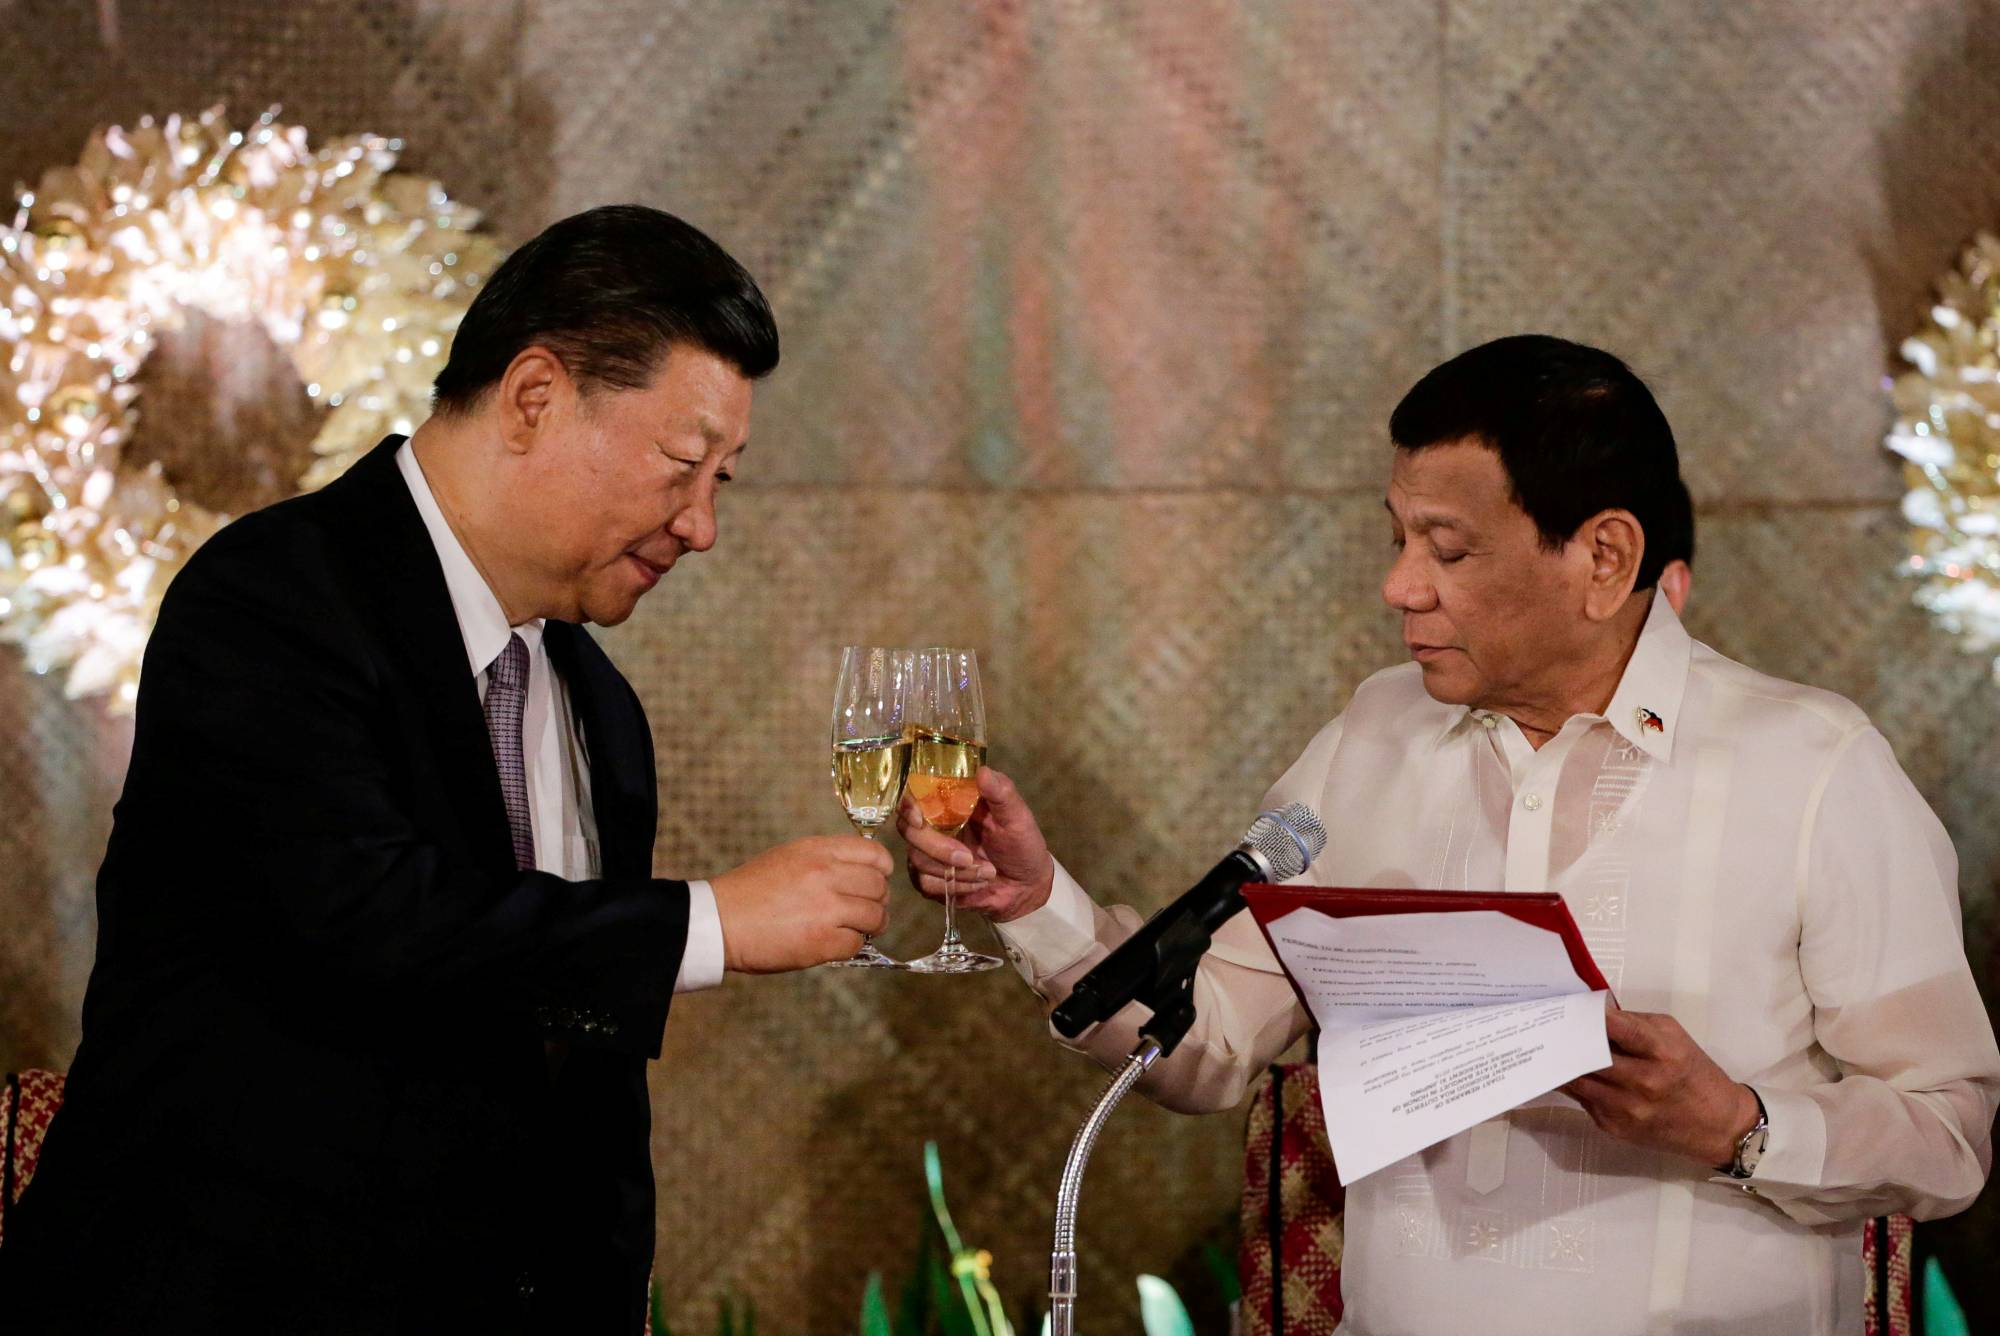 China's President Xi Jinping and Philippine President Rodrigo Duterte toast during a state banquet at the Malacanang presidential palace in Manila on Nov. 20, 2018. | POOL / VIA REUTERS